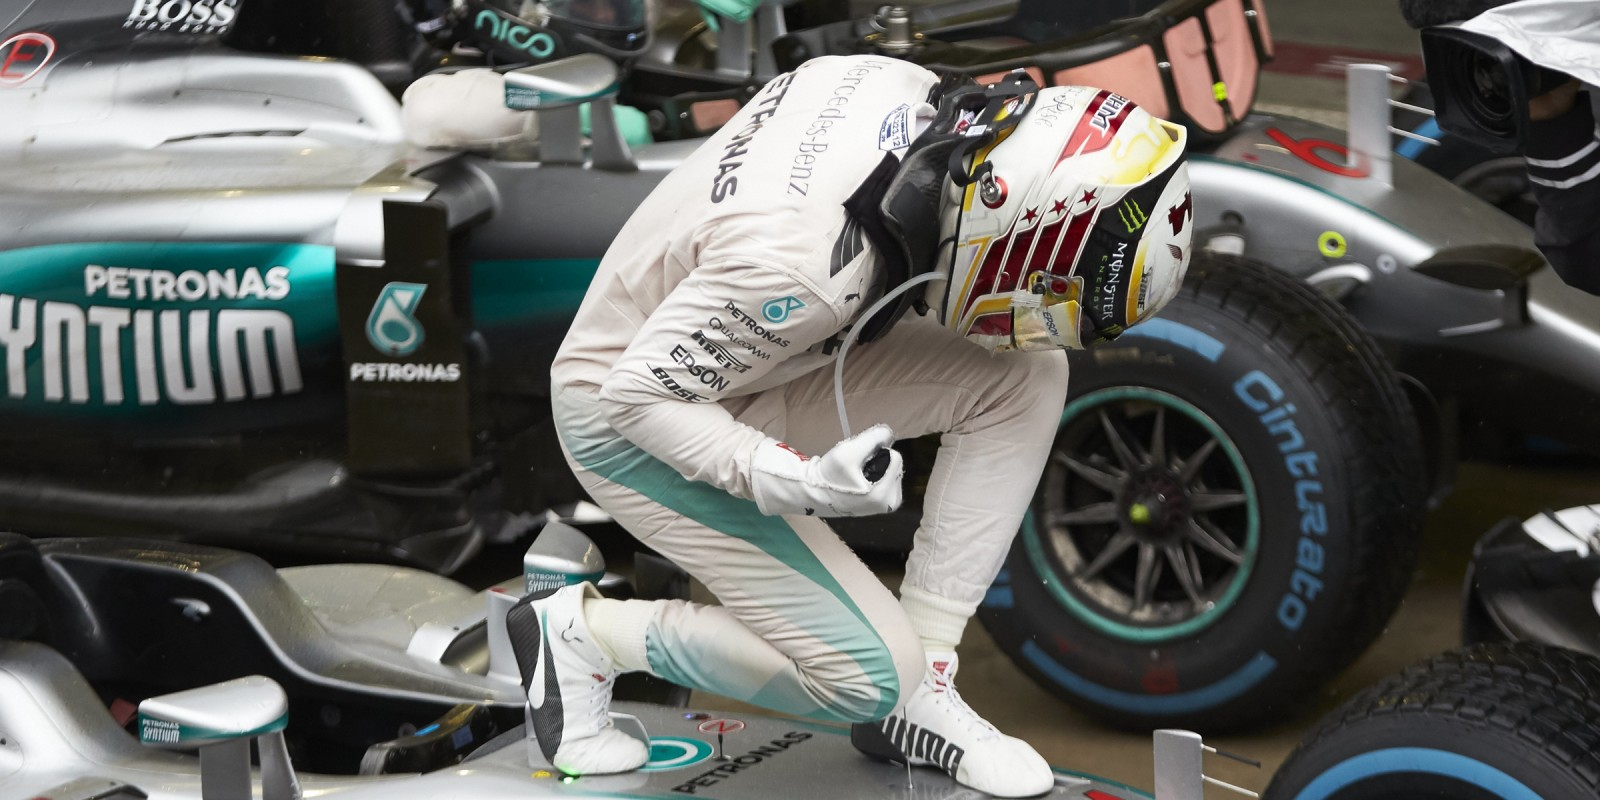 Sunday images from the 2016 Brazilian Grand Prix